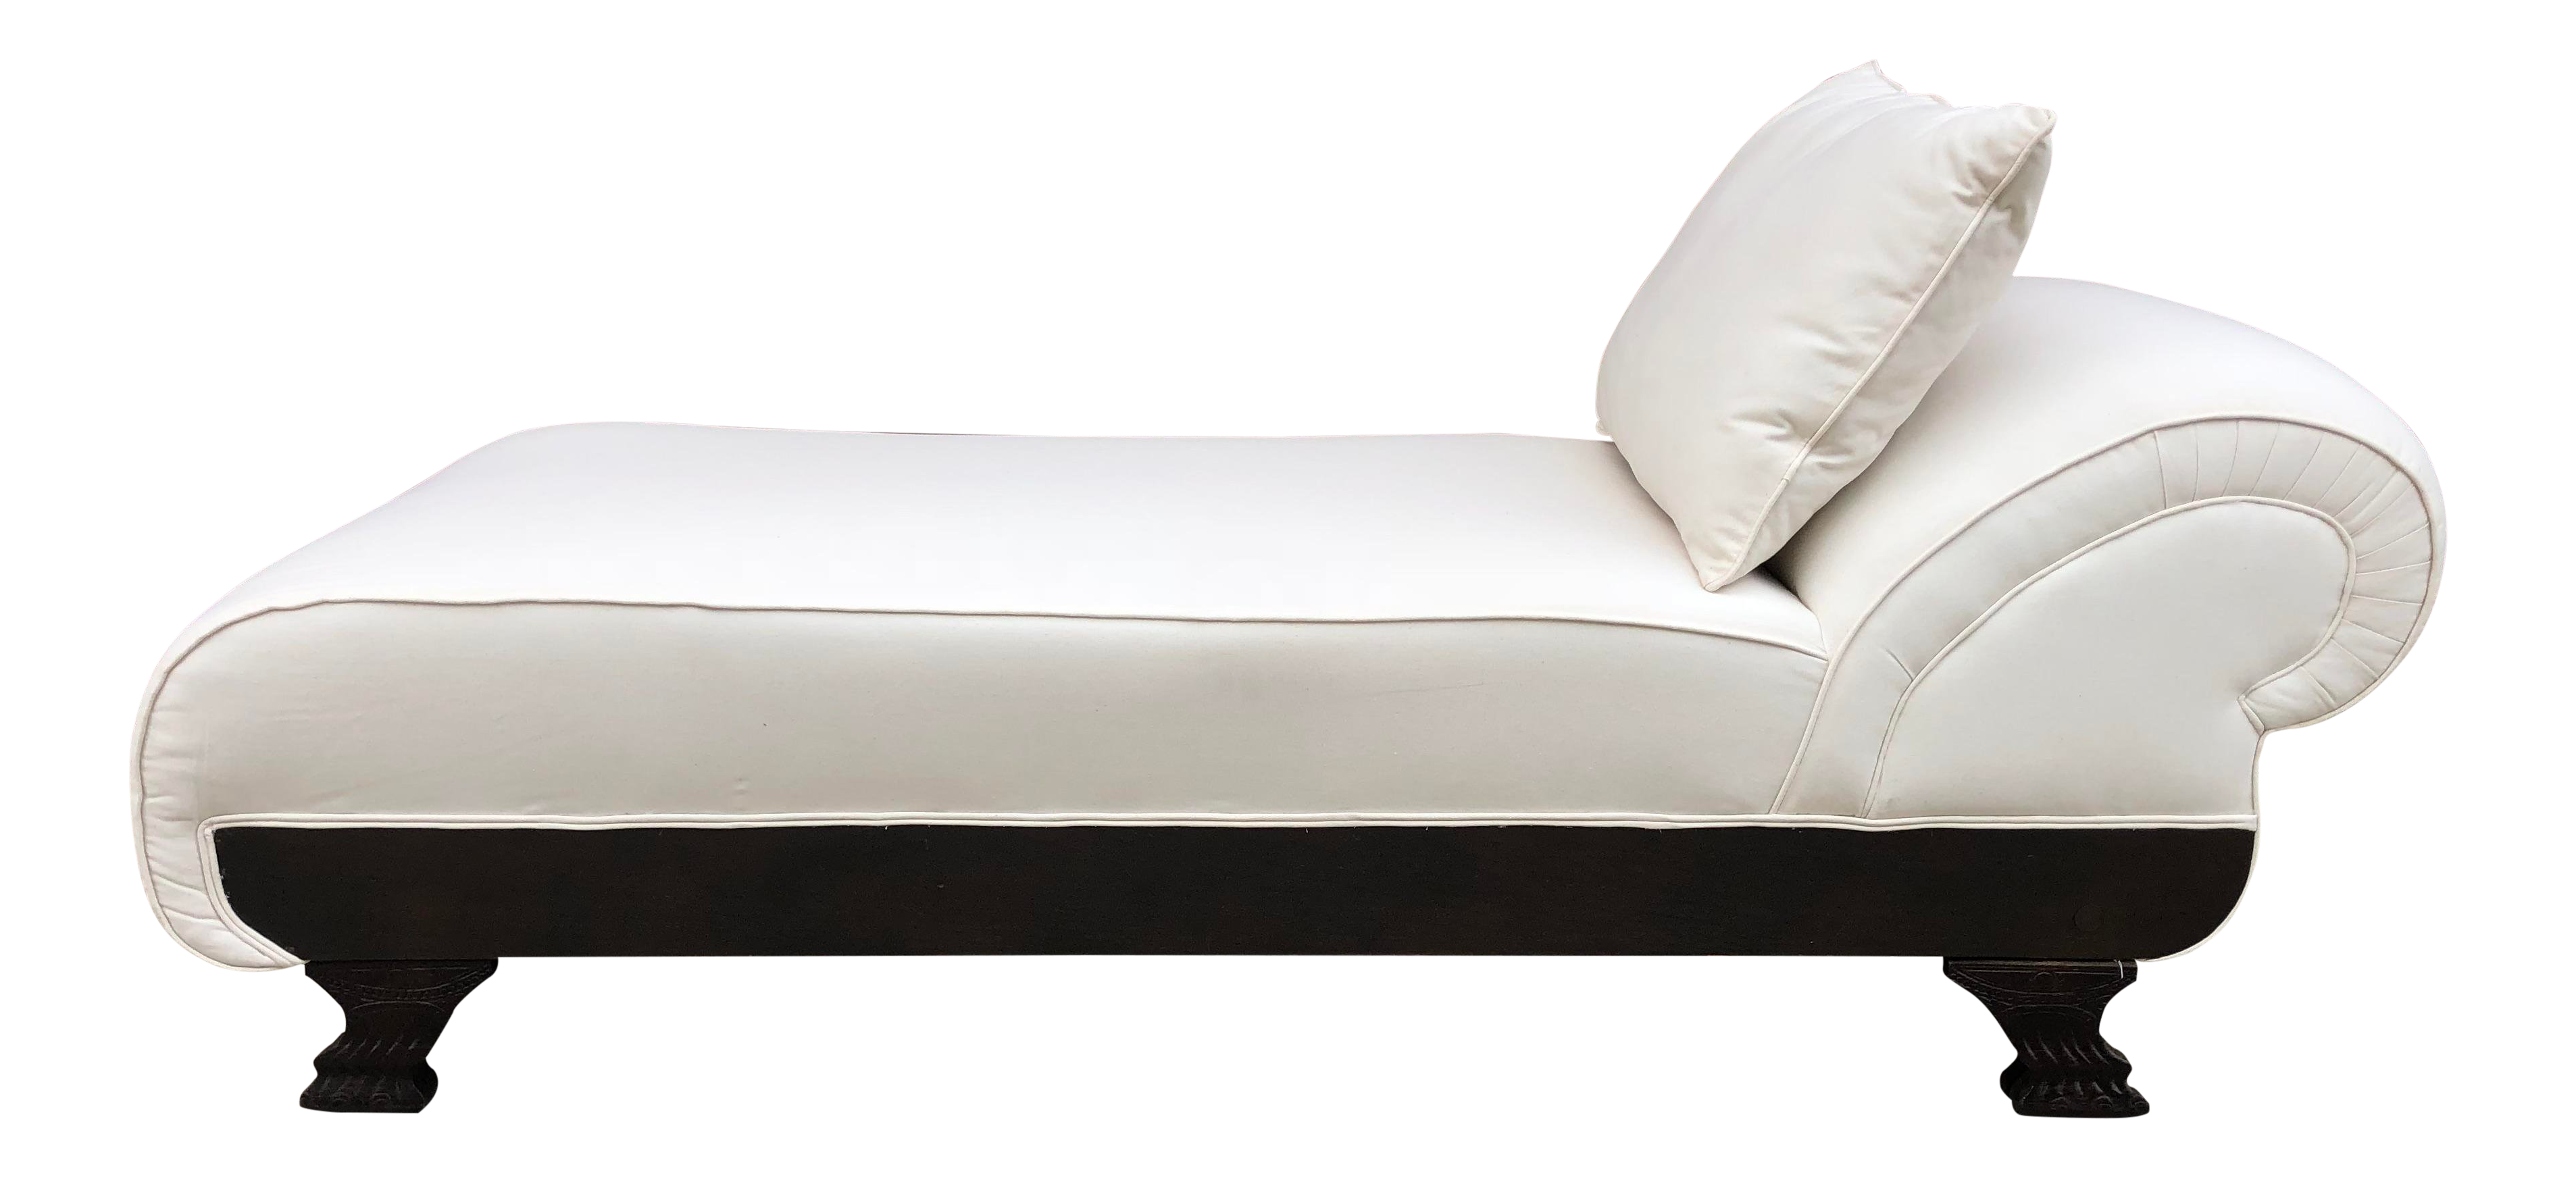 Amazing Late 1800S Victorian White Upholstered Fainting Couch Chaise Unemploymentrelief Wooden Chair Designs For Living Room Unemploymentrelieforg